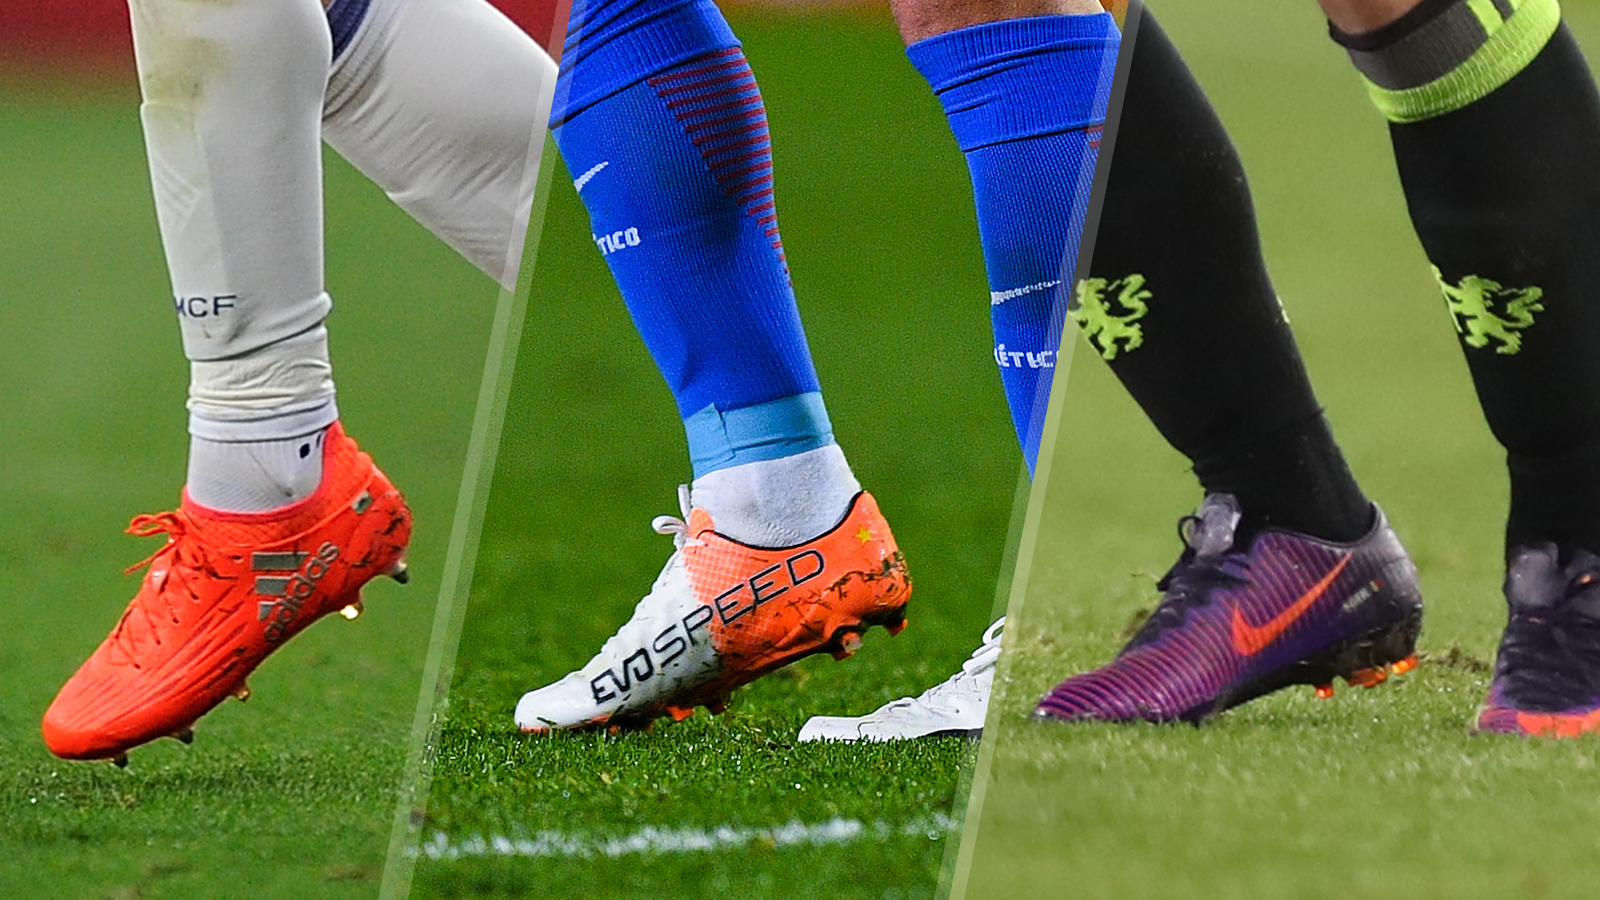 32ff333f4 The 10 most popular boots worn by pro soccer players | FOX Sports